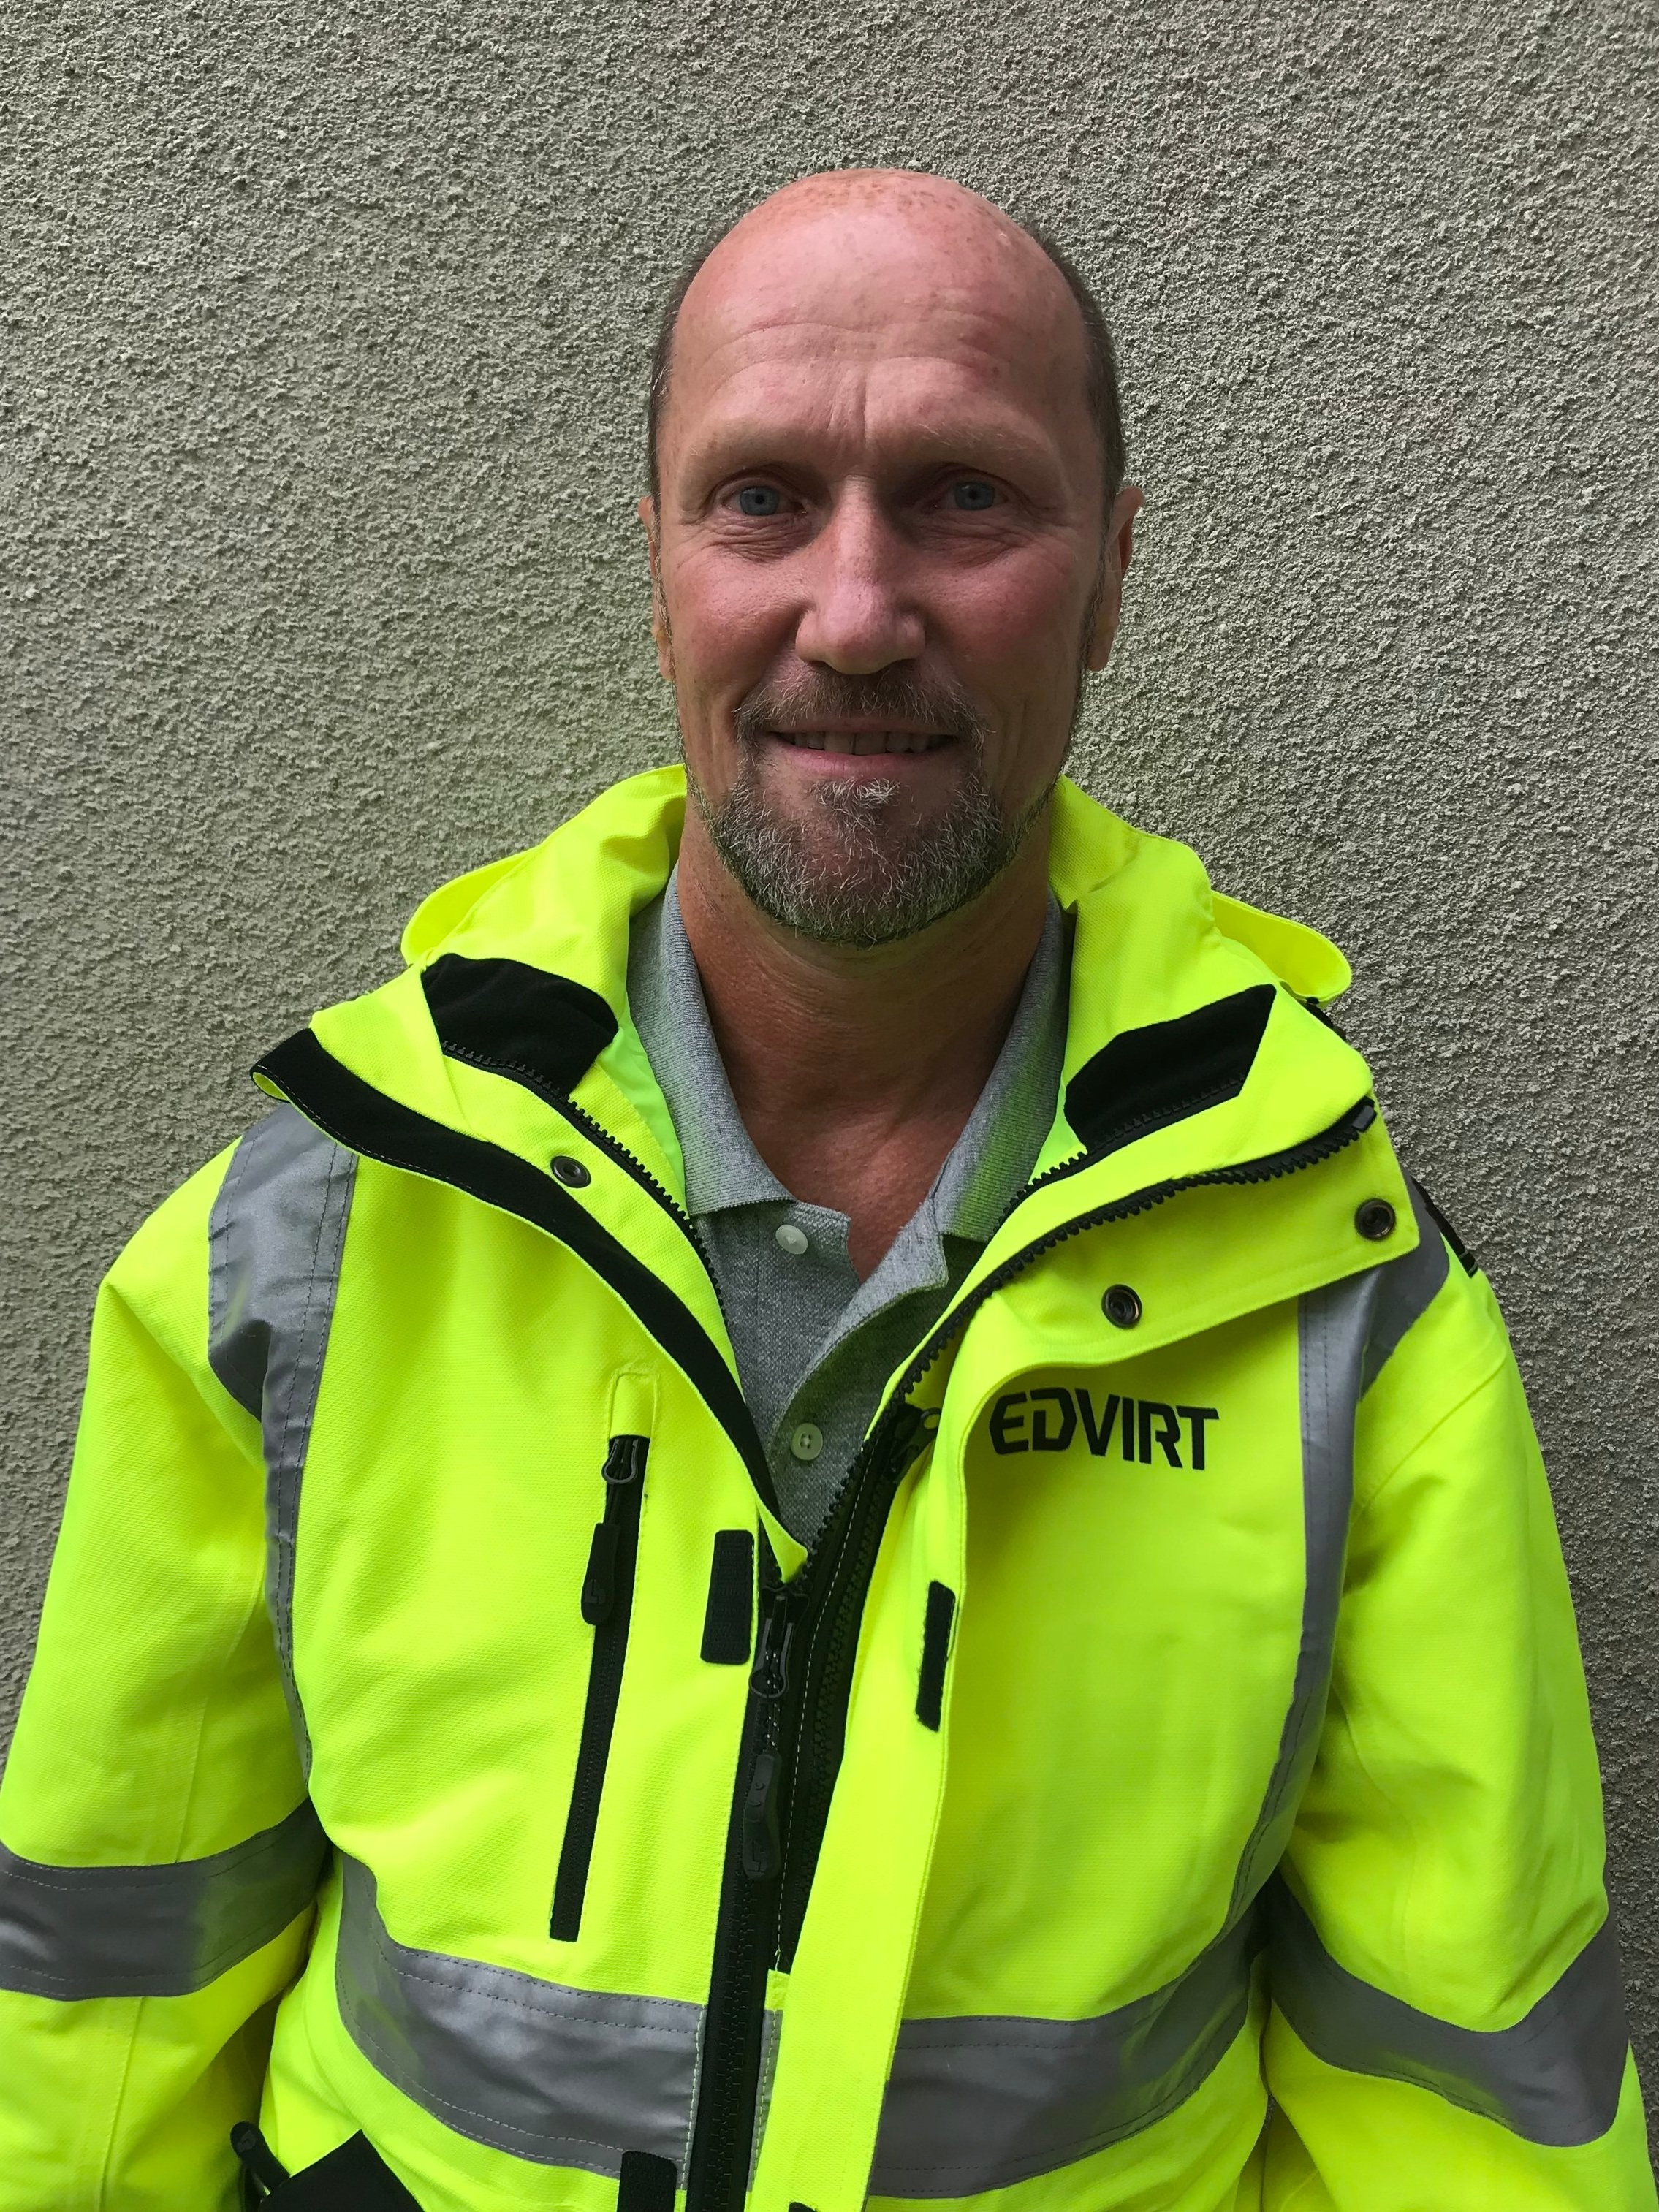 TOMMY - Tommy has been in the tunneling industry over 40 years. He has been holding various position, from Production manager to Head of Technology. Outside of work he enjoys half-marathons and cross country traveling with his family in their RV.Areas of expertise- Concrete spraying (hand held and mechanical)- Bolting (manual)- Hard rock grouting